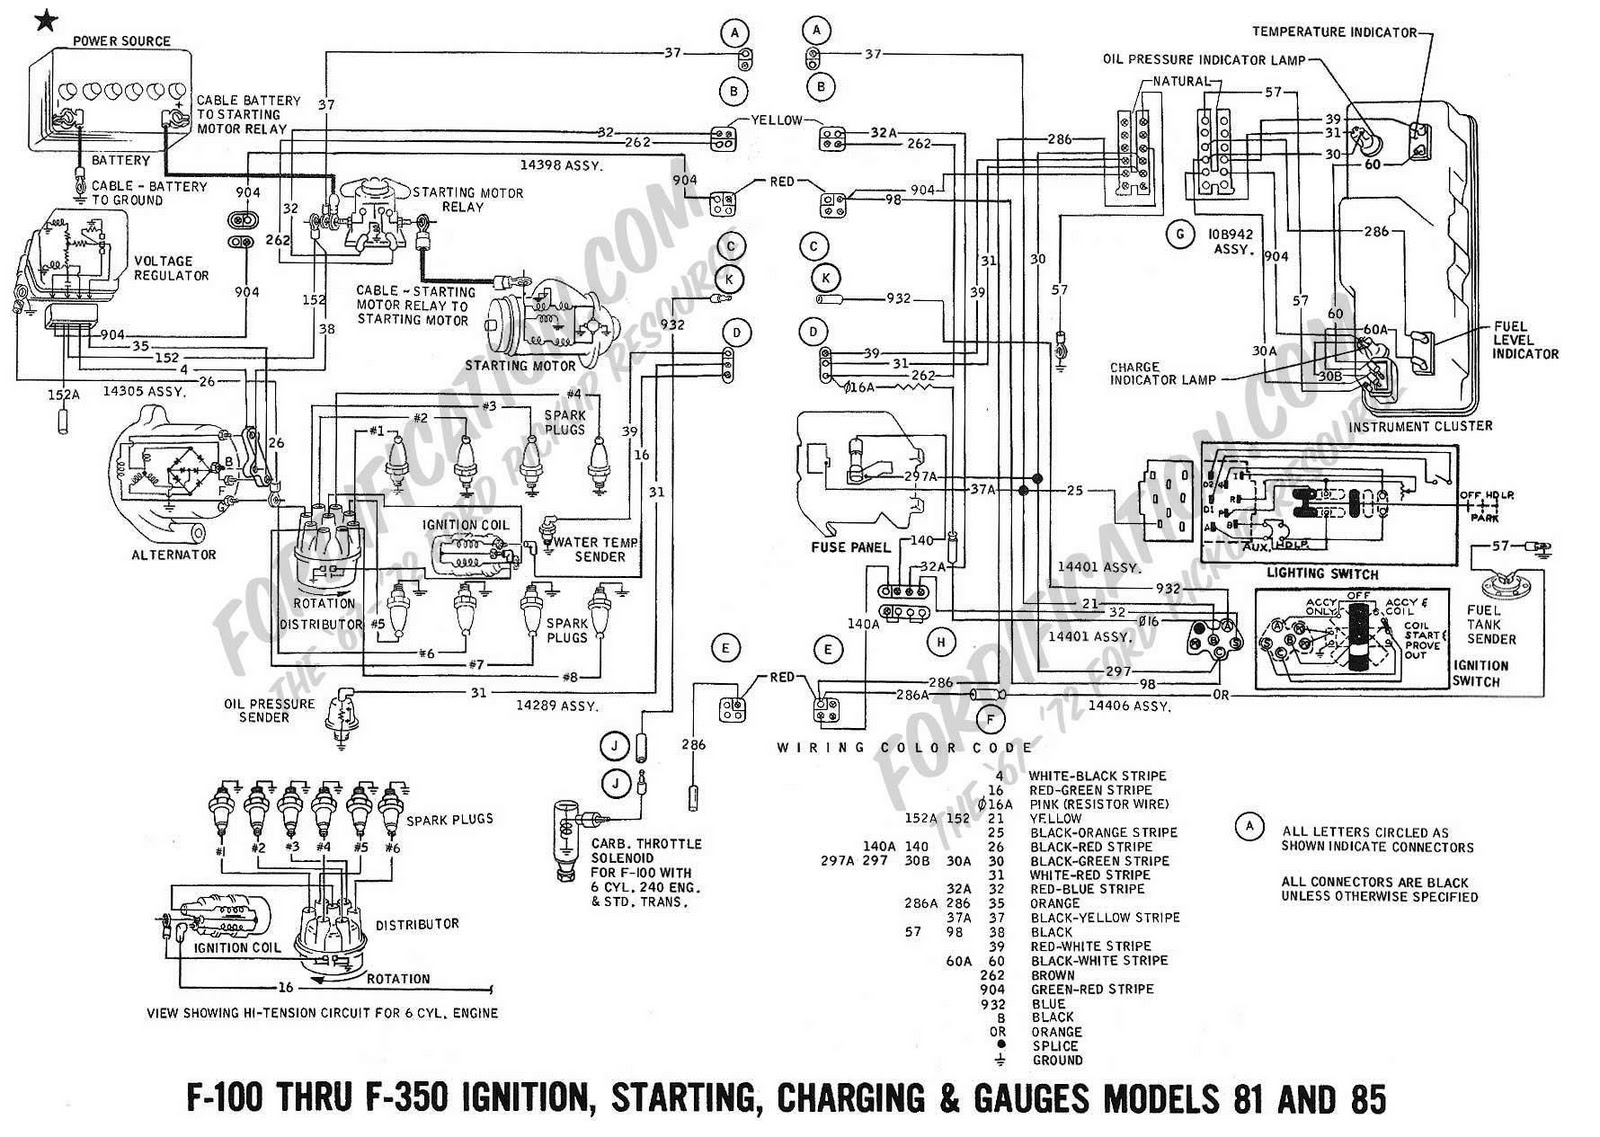 50 ford wiring harness wiring diagram detailed stereo wiring harness color codes ford truck wiring harness [ 1600 x 1137 Pixel ]